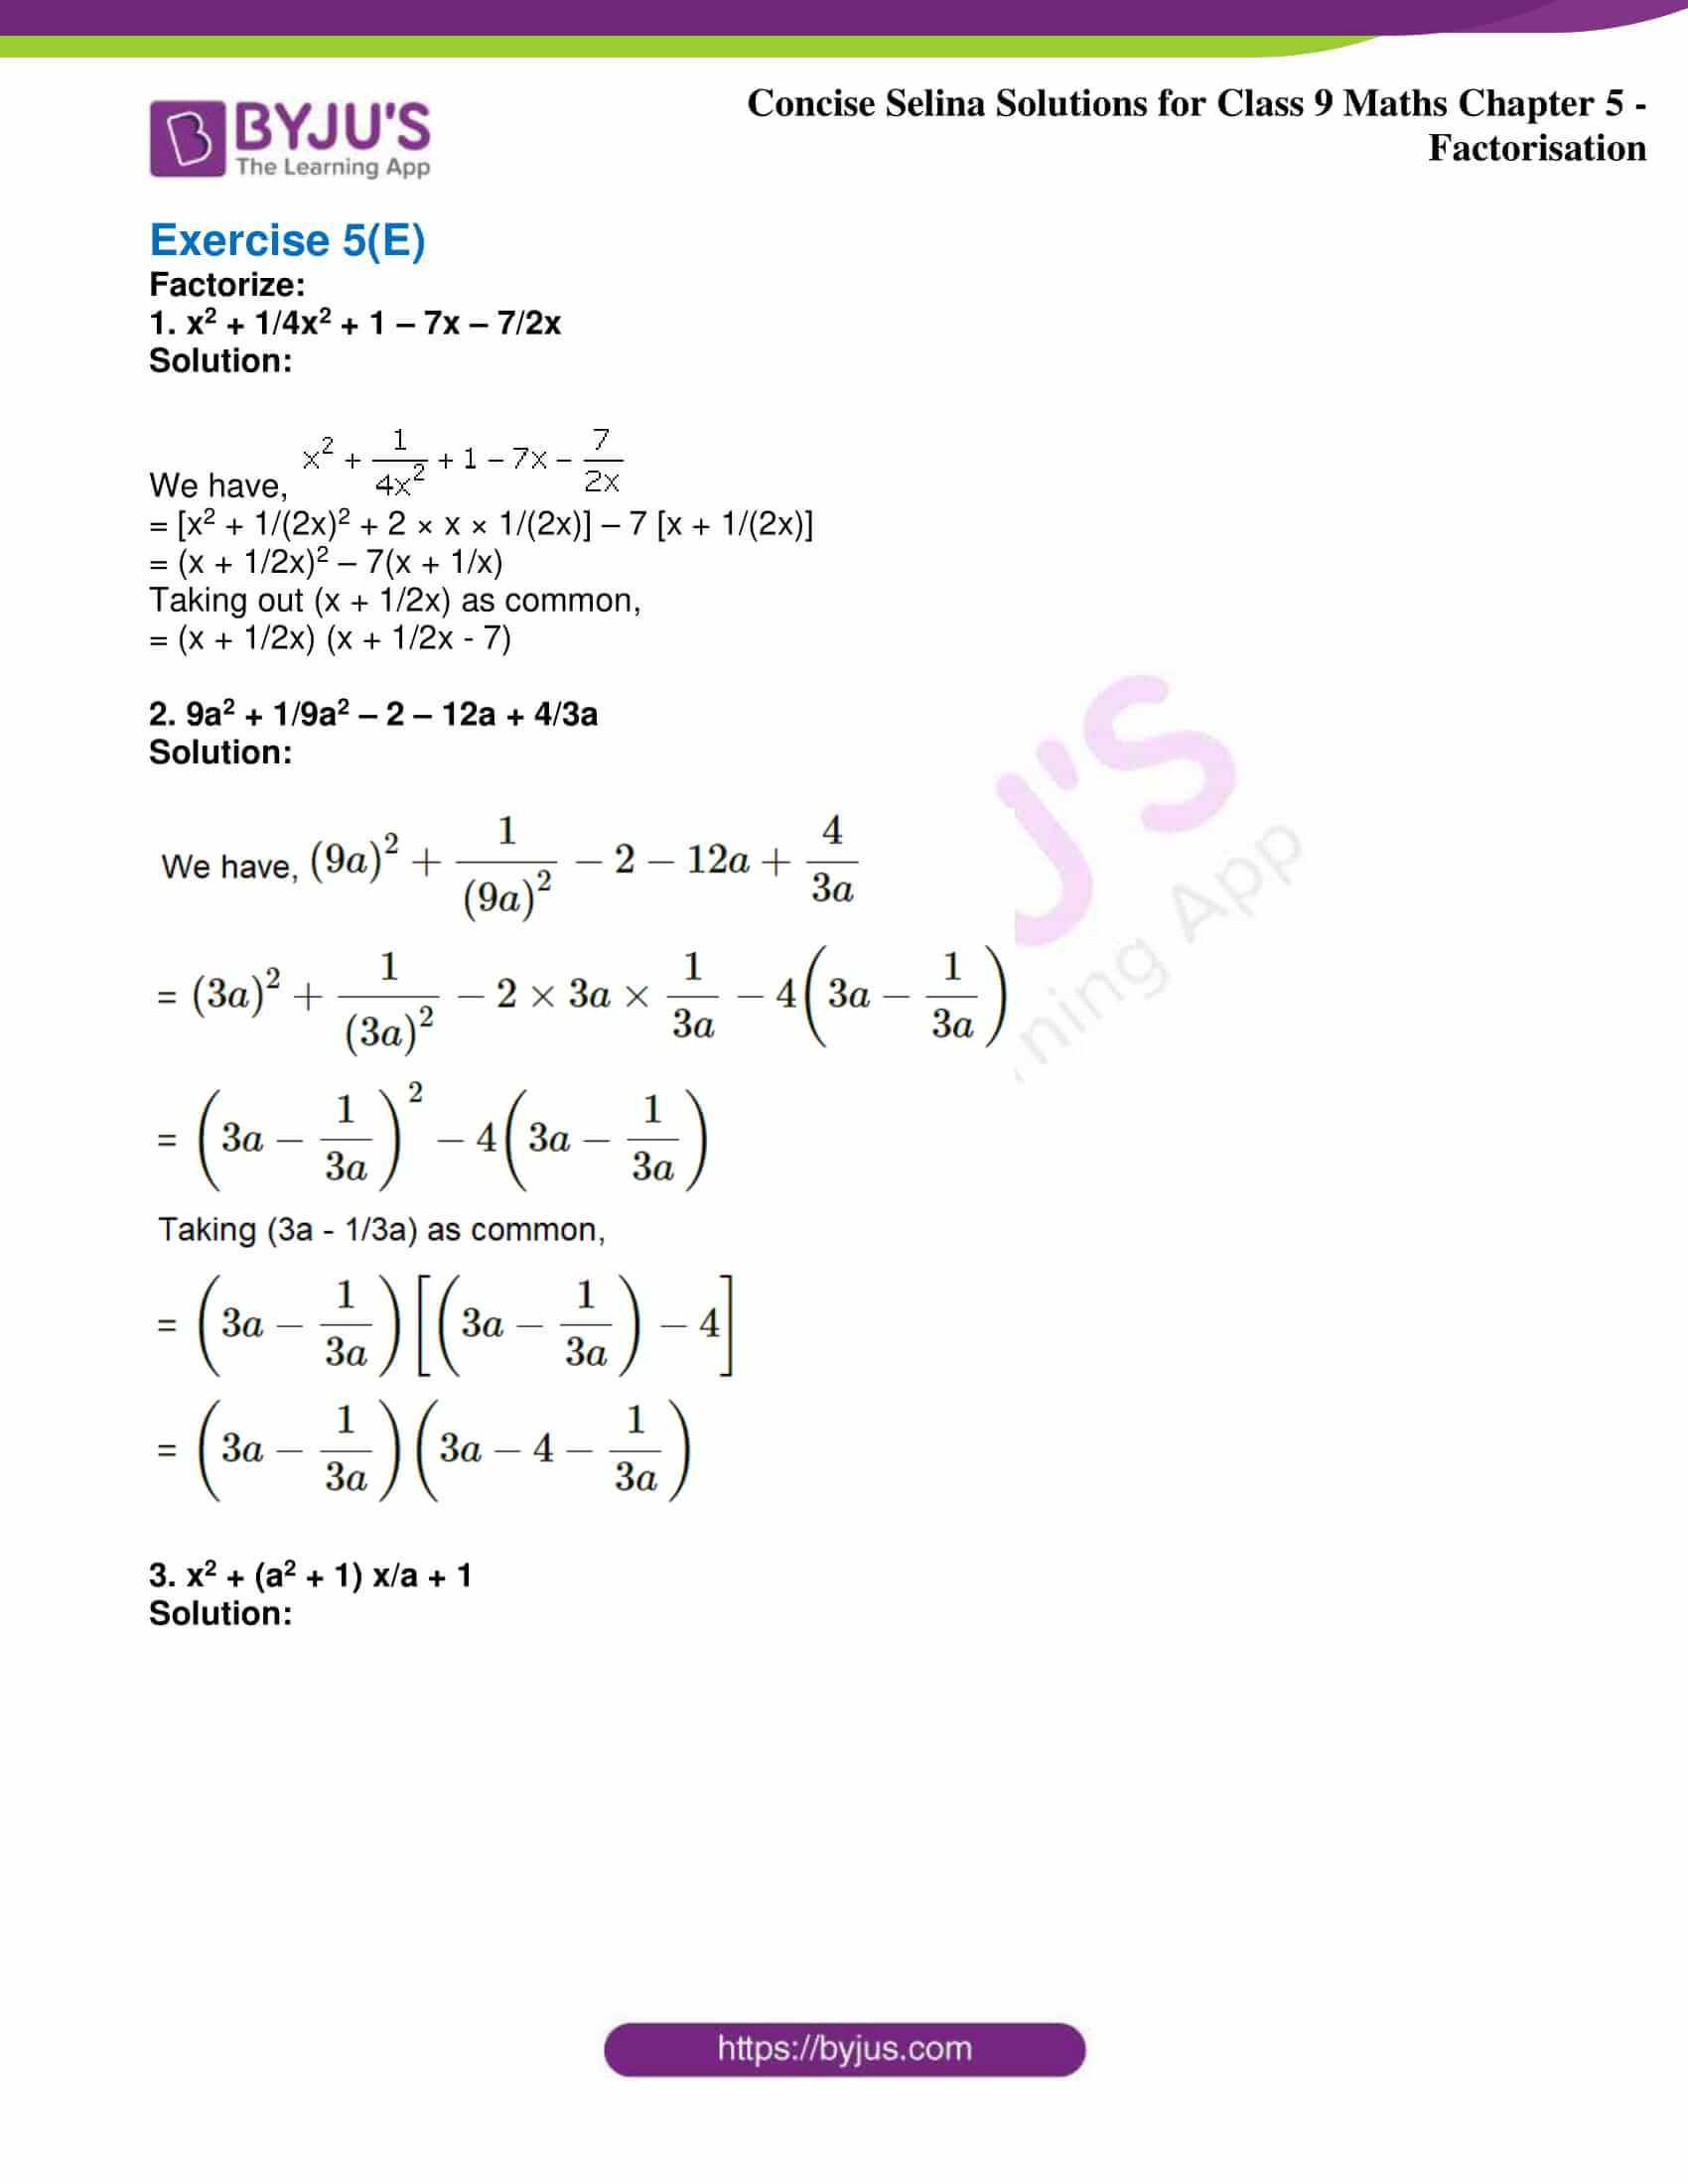 icse class 9 maths may10 selina solutions chapter 5 factorisation 25